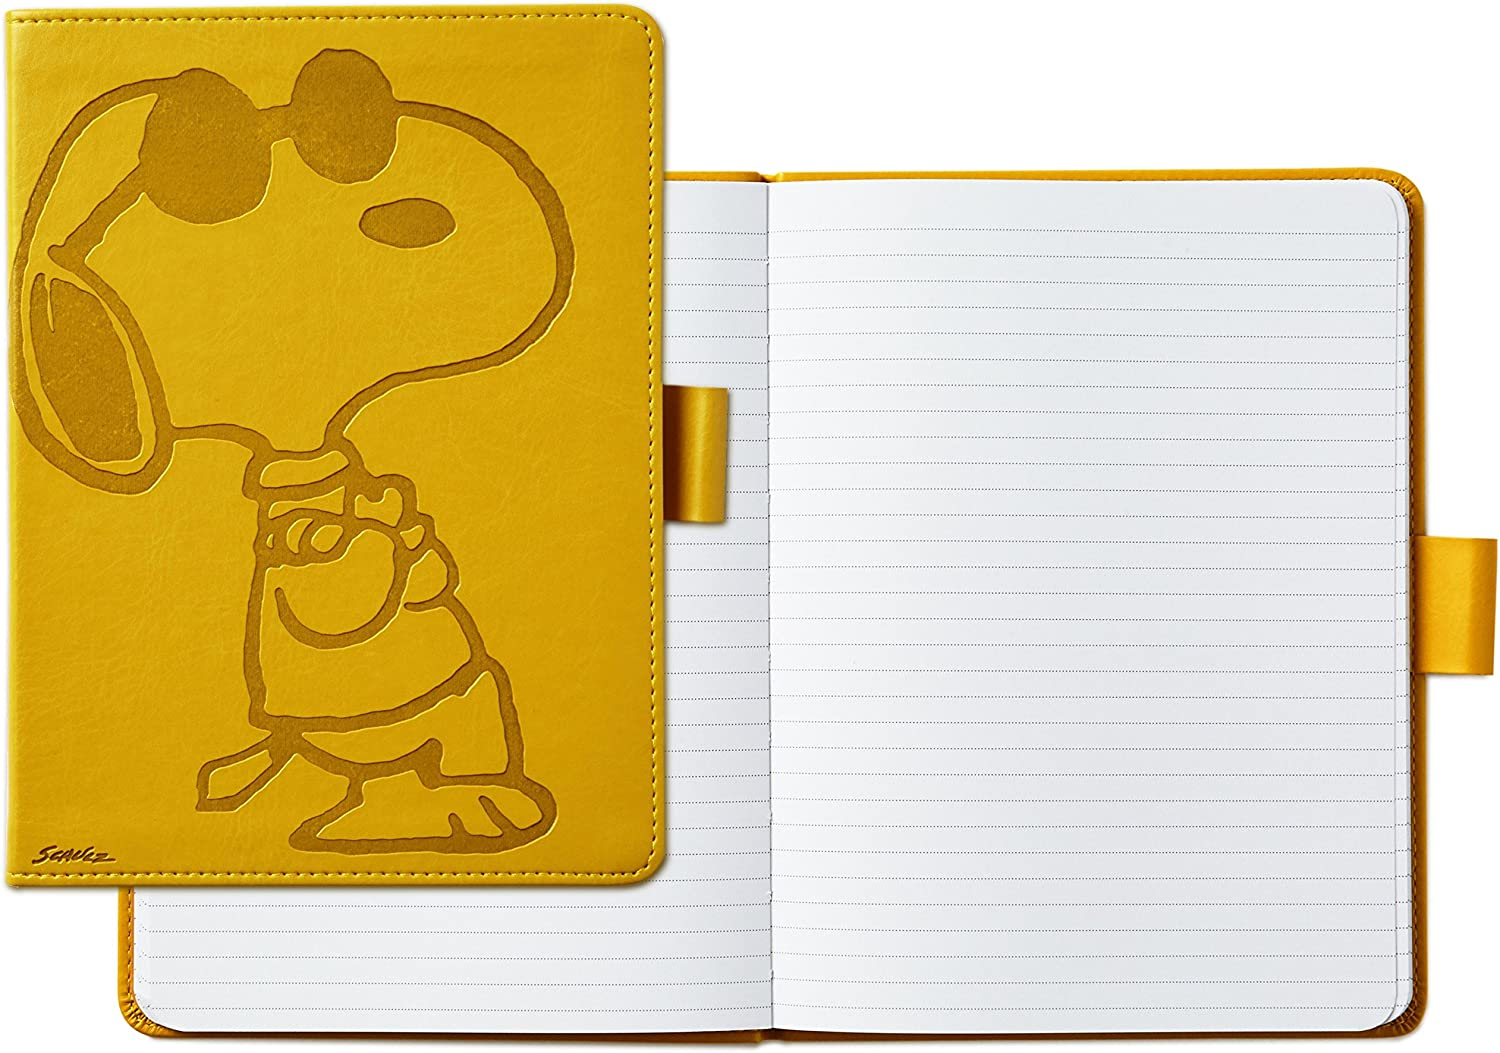 Hallmark Peanuts Hardcover Journal with Lined Pages (Snoopy)